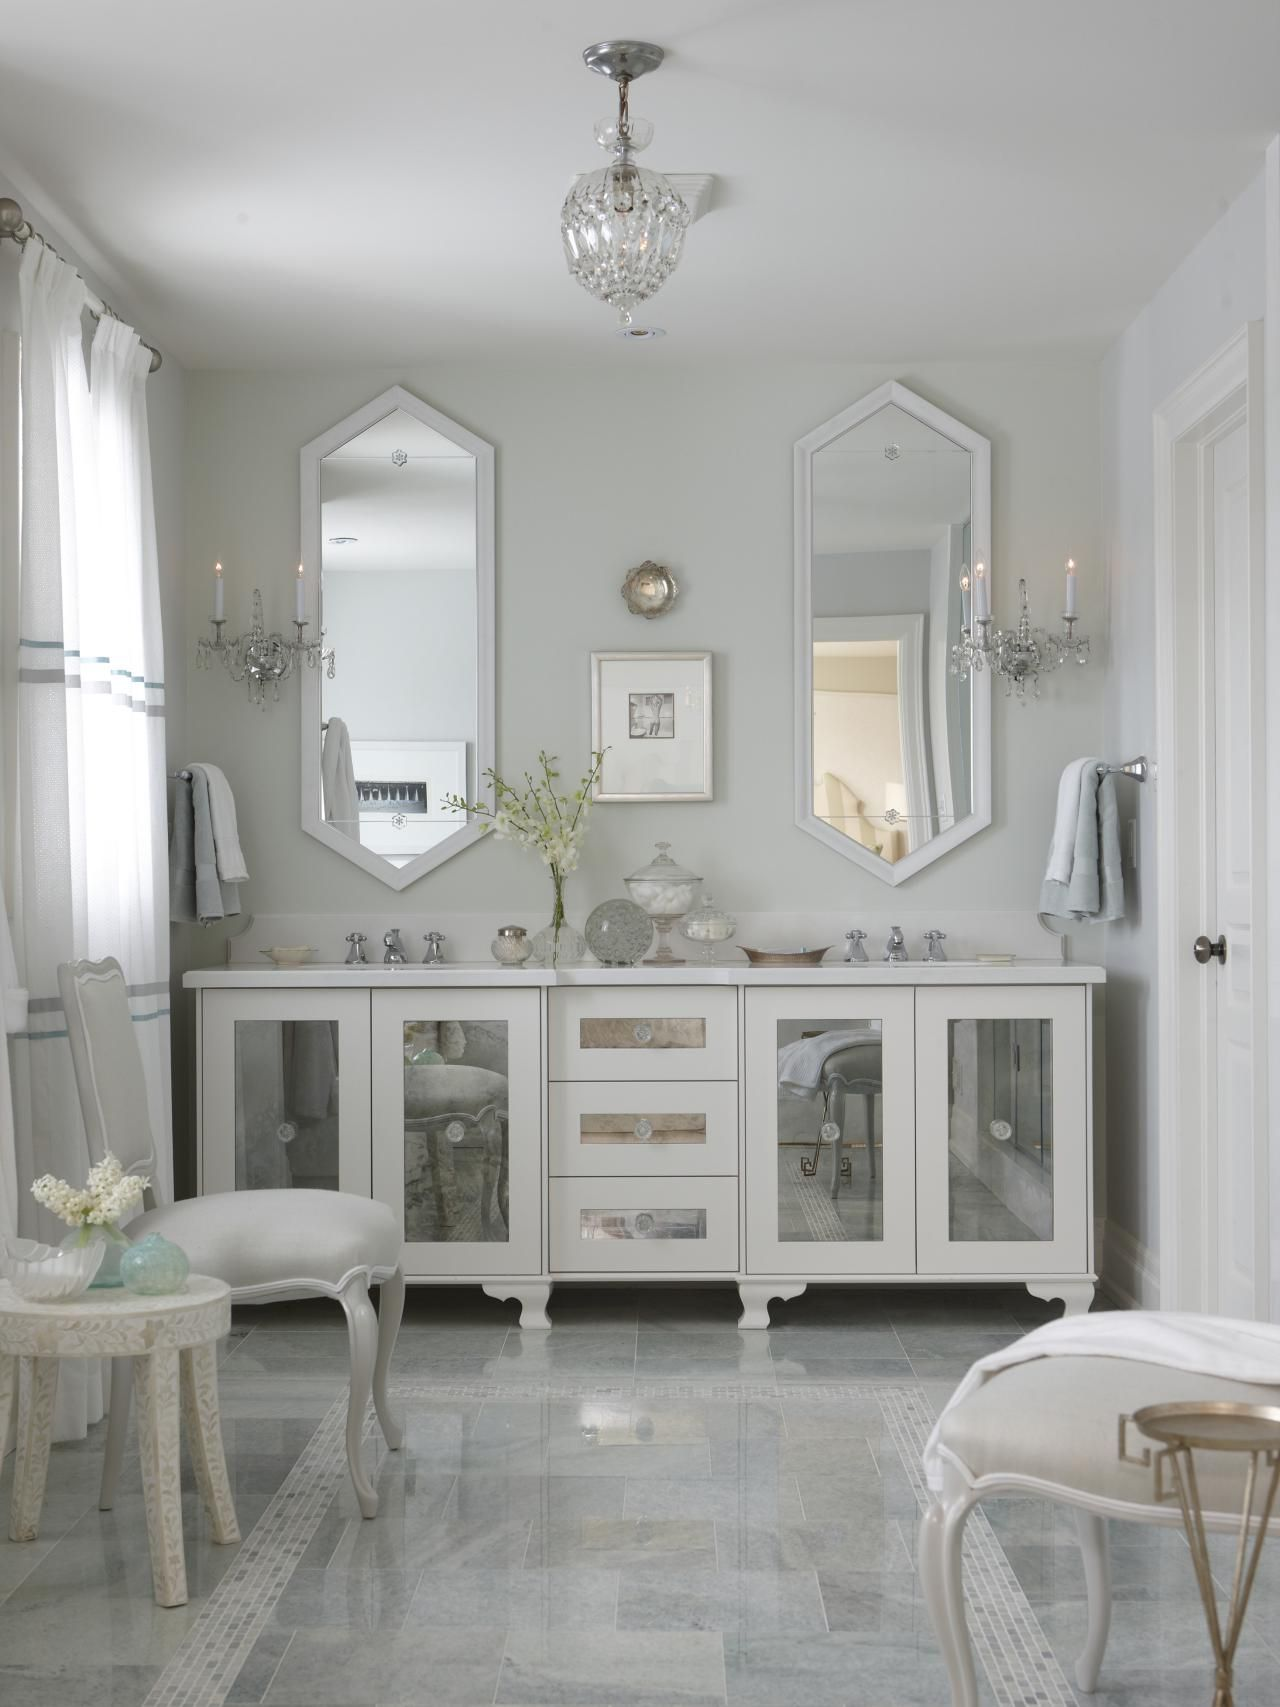 Enjoy A Relaxing Spa Escape With This Luxurious Master Bathroom. White  Marble Floors And An